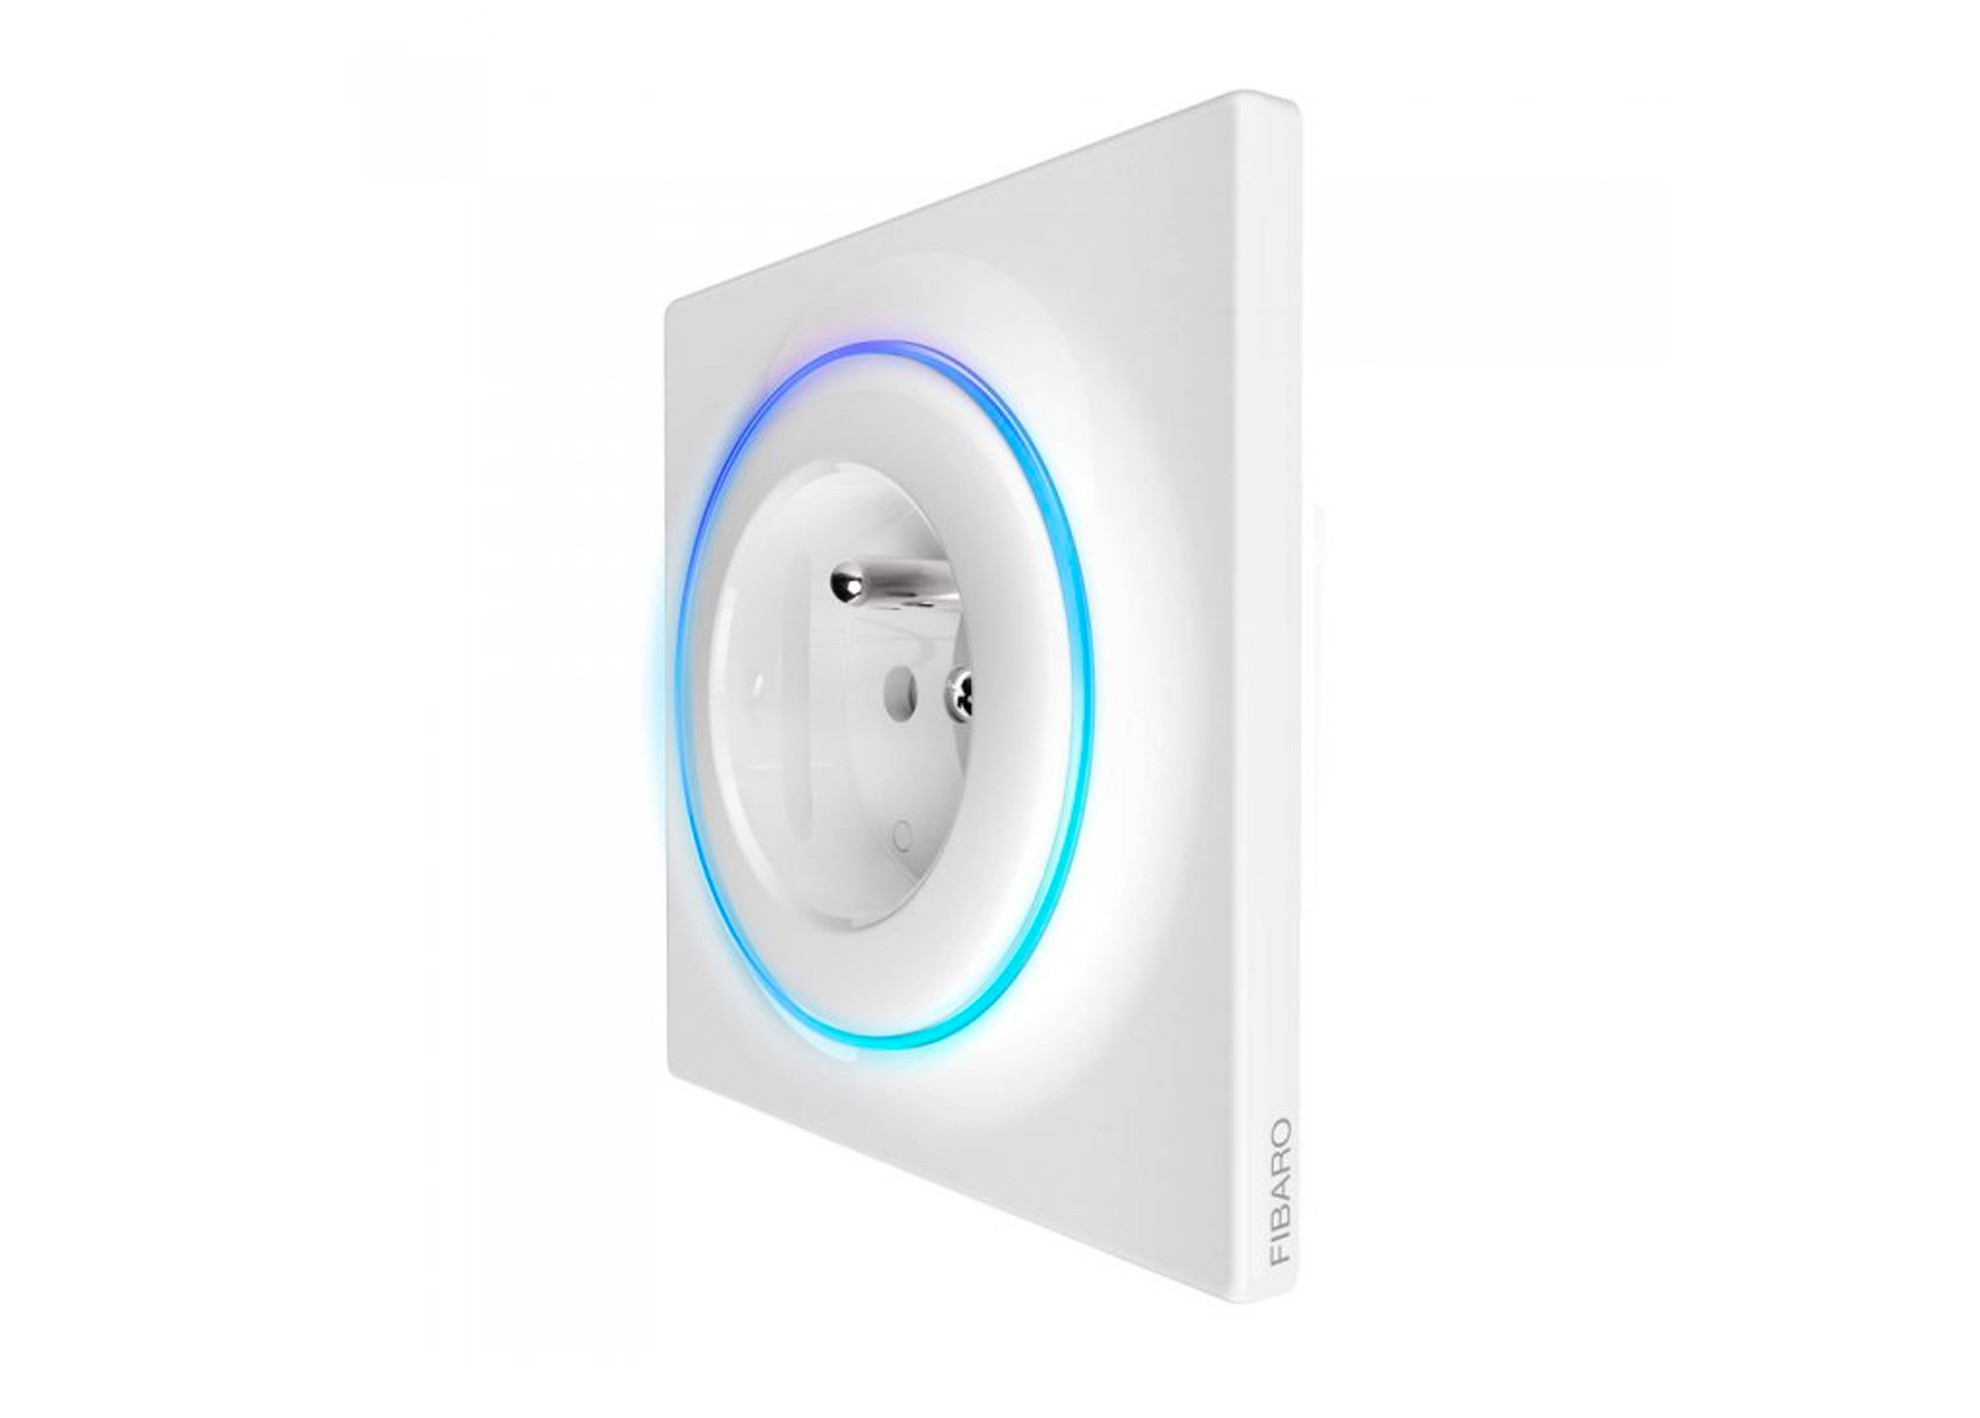 Intelig. zásuvka Fibaro Walli Outlet typ E Z-Wave